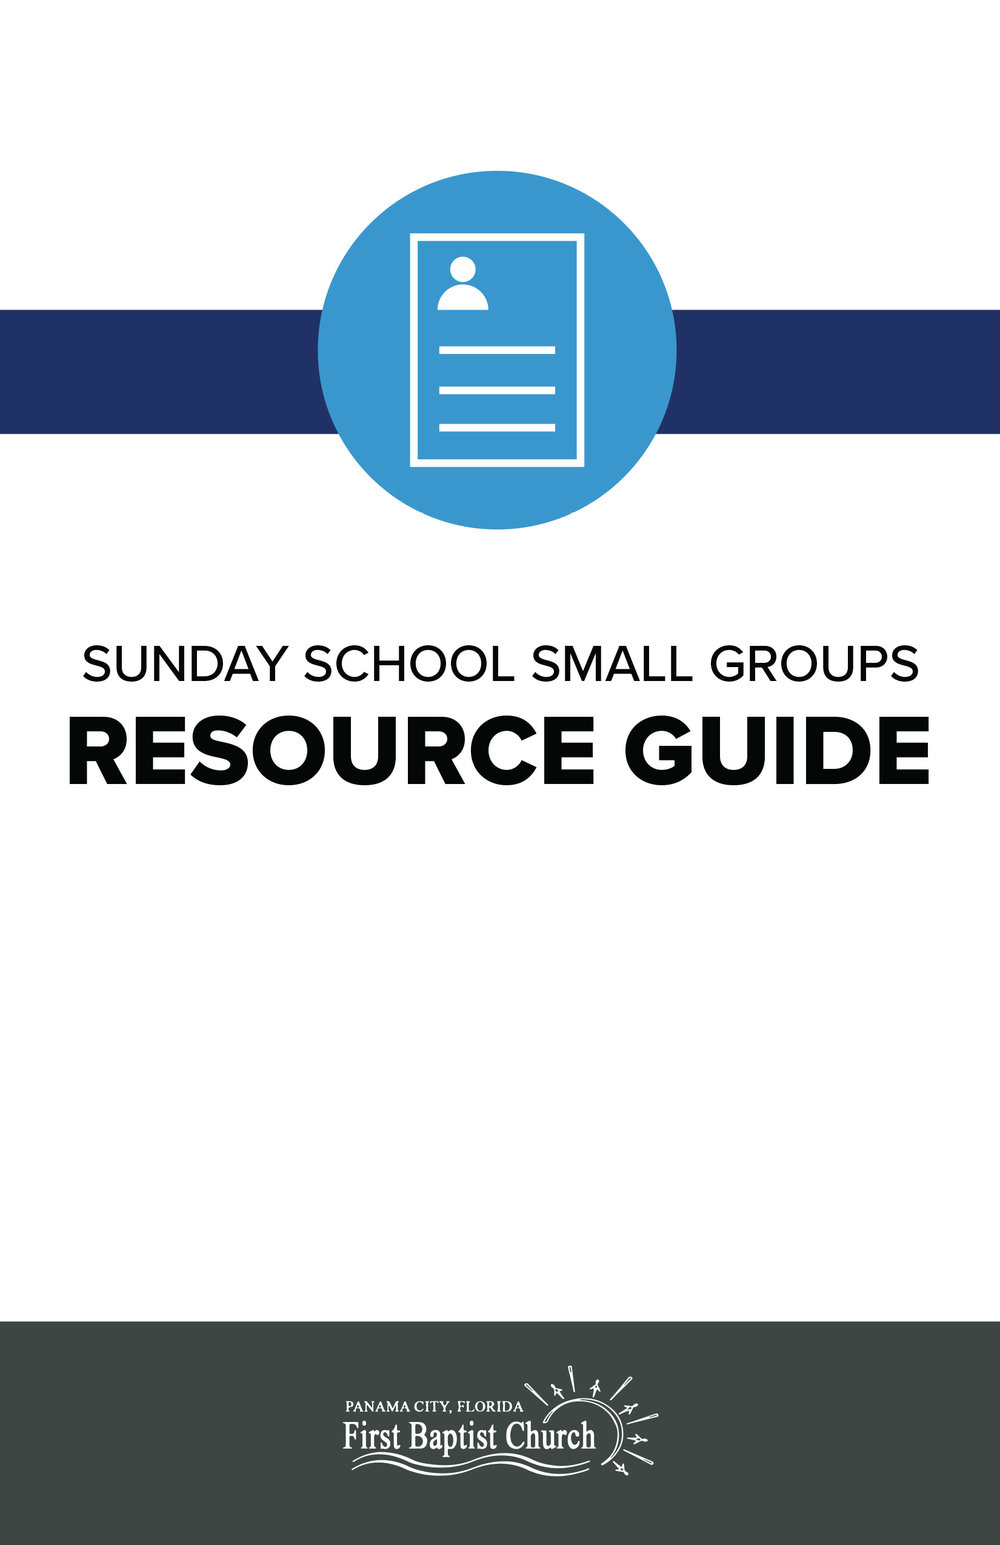 Sunday School Small Groups Resource Guide - This booklet gives a description of our small group classes that are offered at our church. If you would like more information about a class, contact our Education Coordinator, Jennifer Sims at jsims@firstbaptistpc.com.